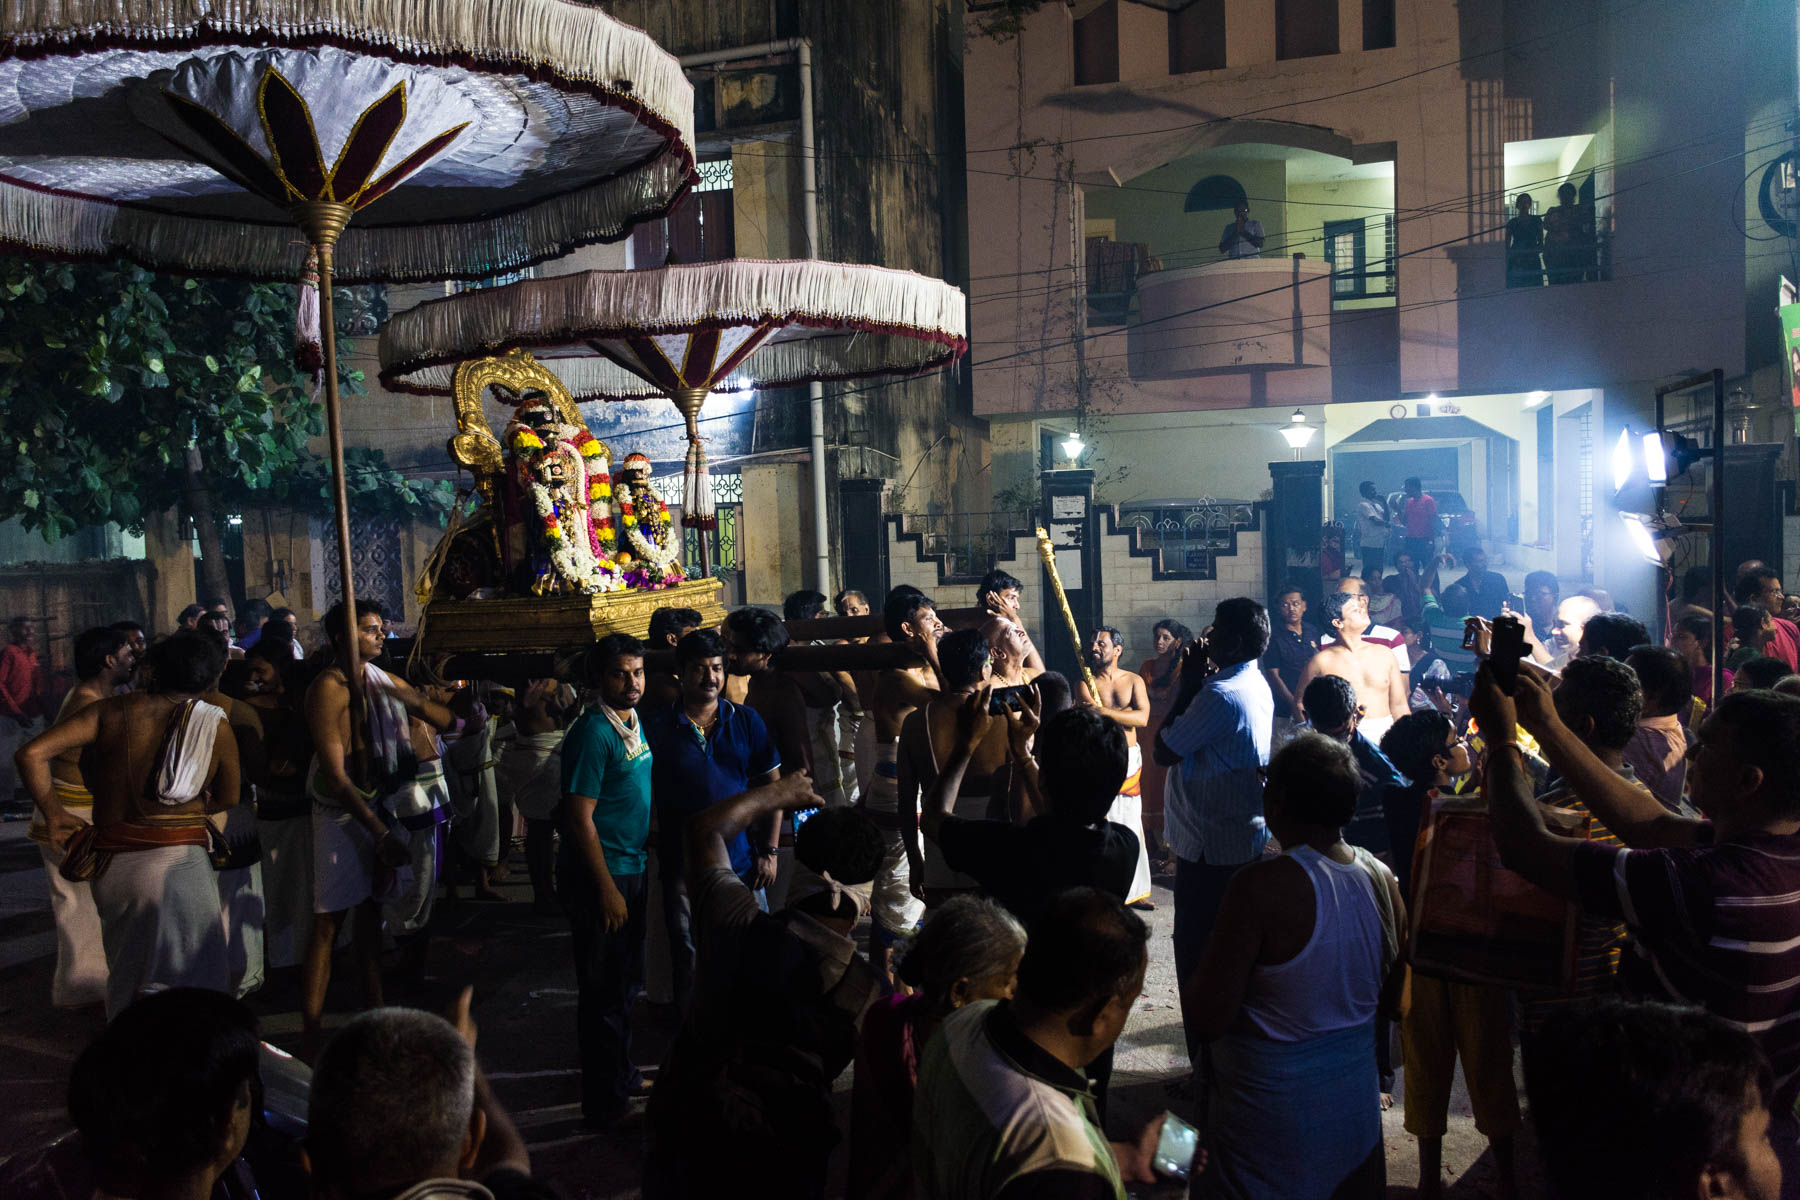 Parthasarathy's procession while celebrating Diwali in Chennai, India - Lost With Purpose